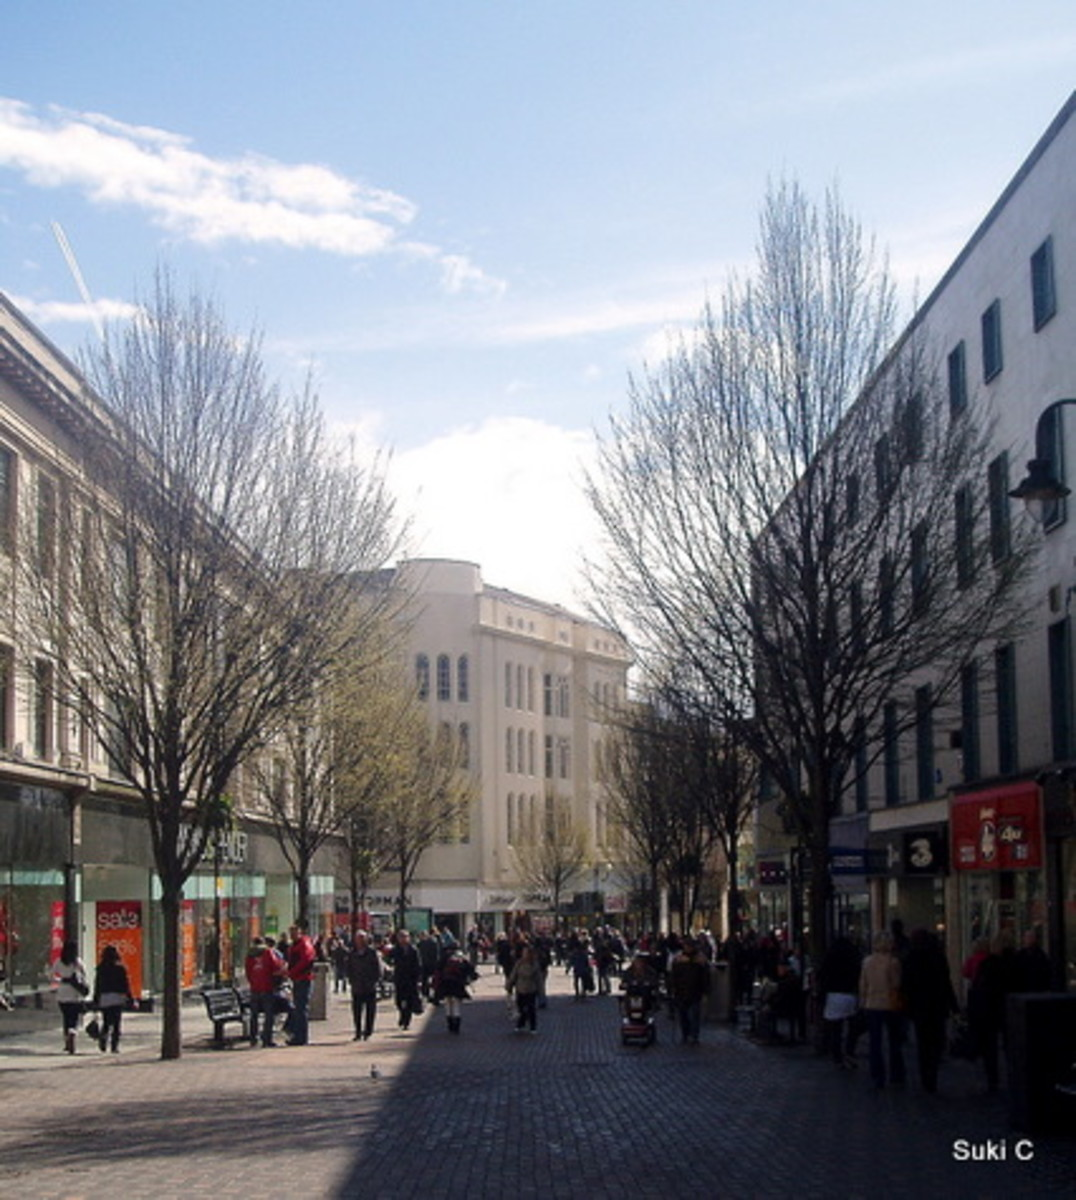 Houndsgate - one of Nottingham's main shopping streets